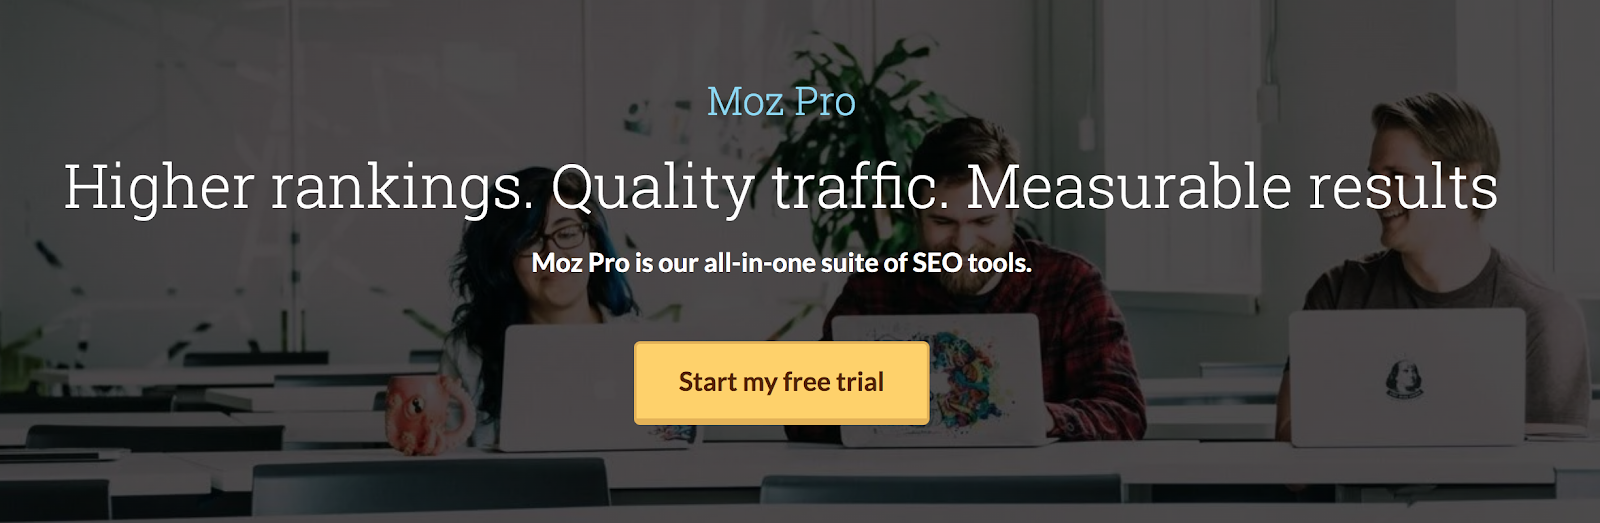 Moz Pro Landing Page Snippet